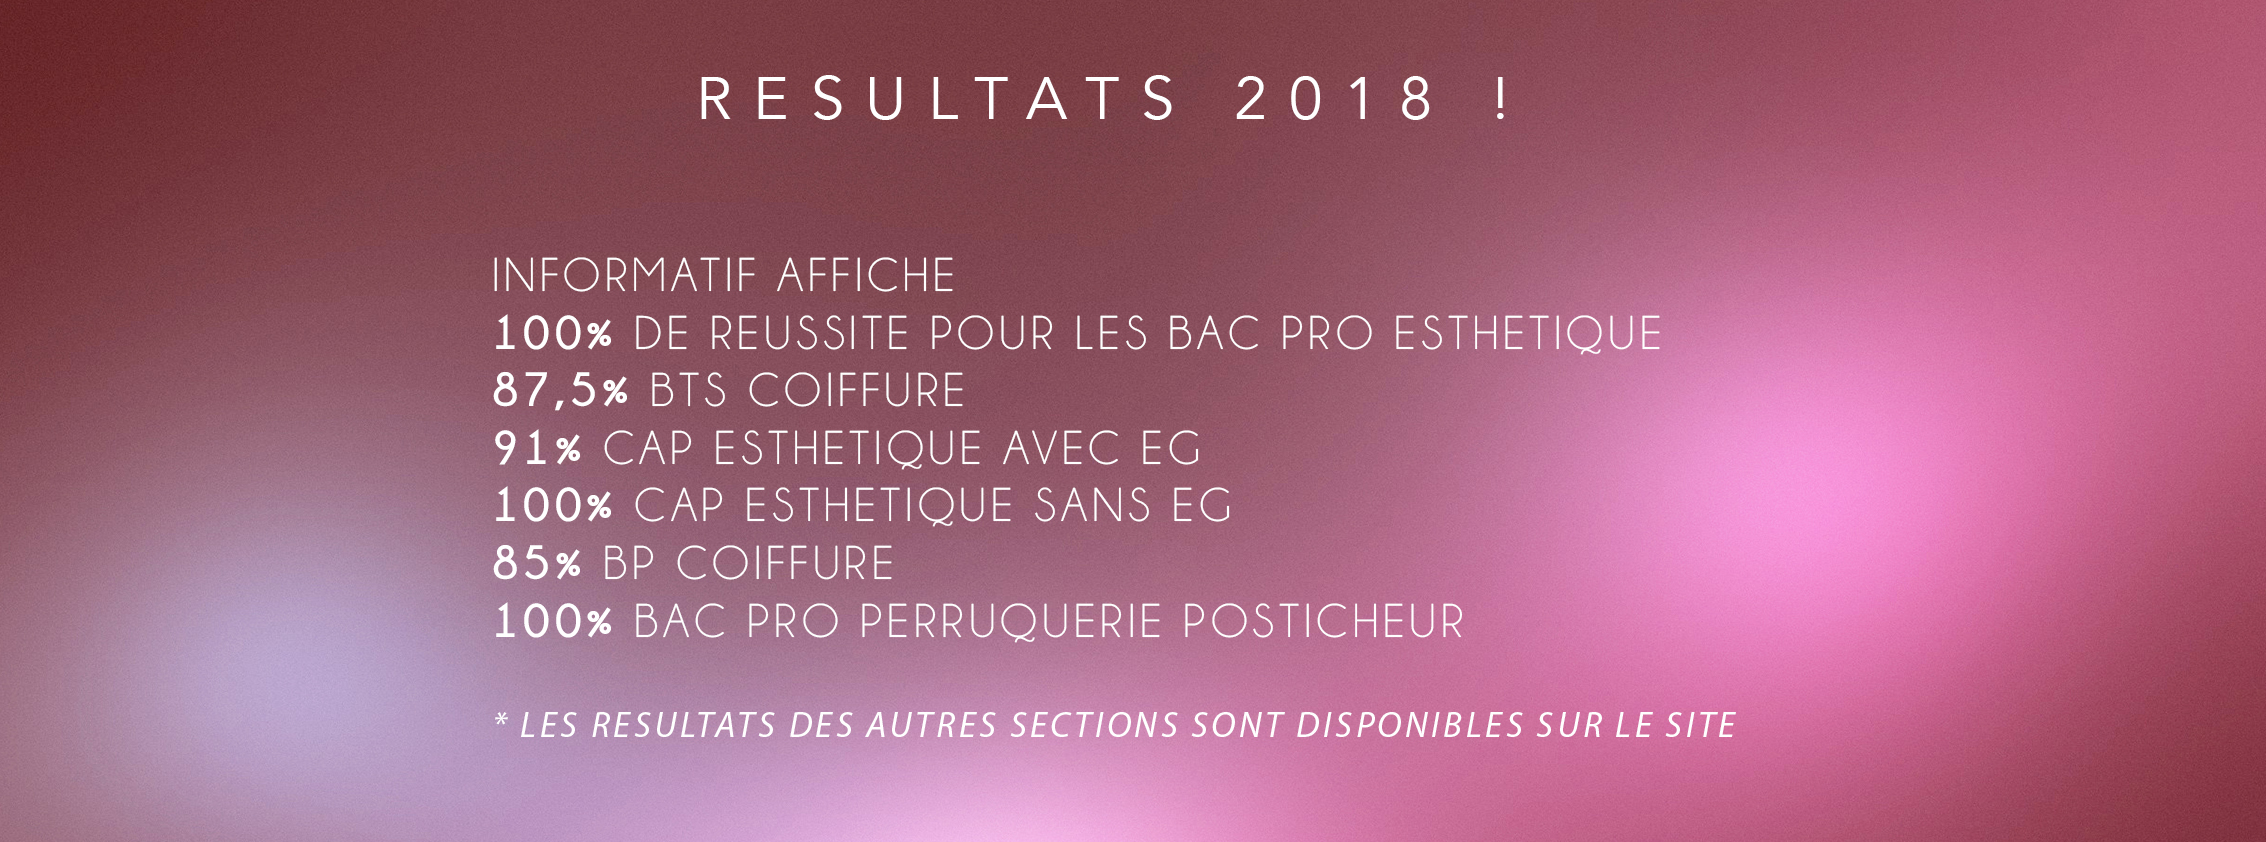 RESULTATS-INF-SITE1